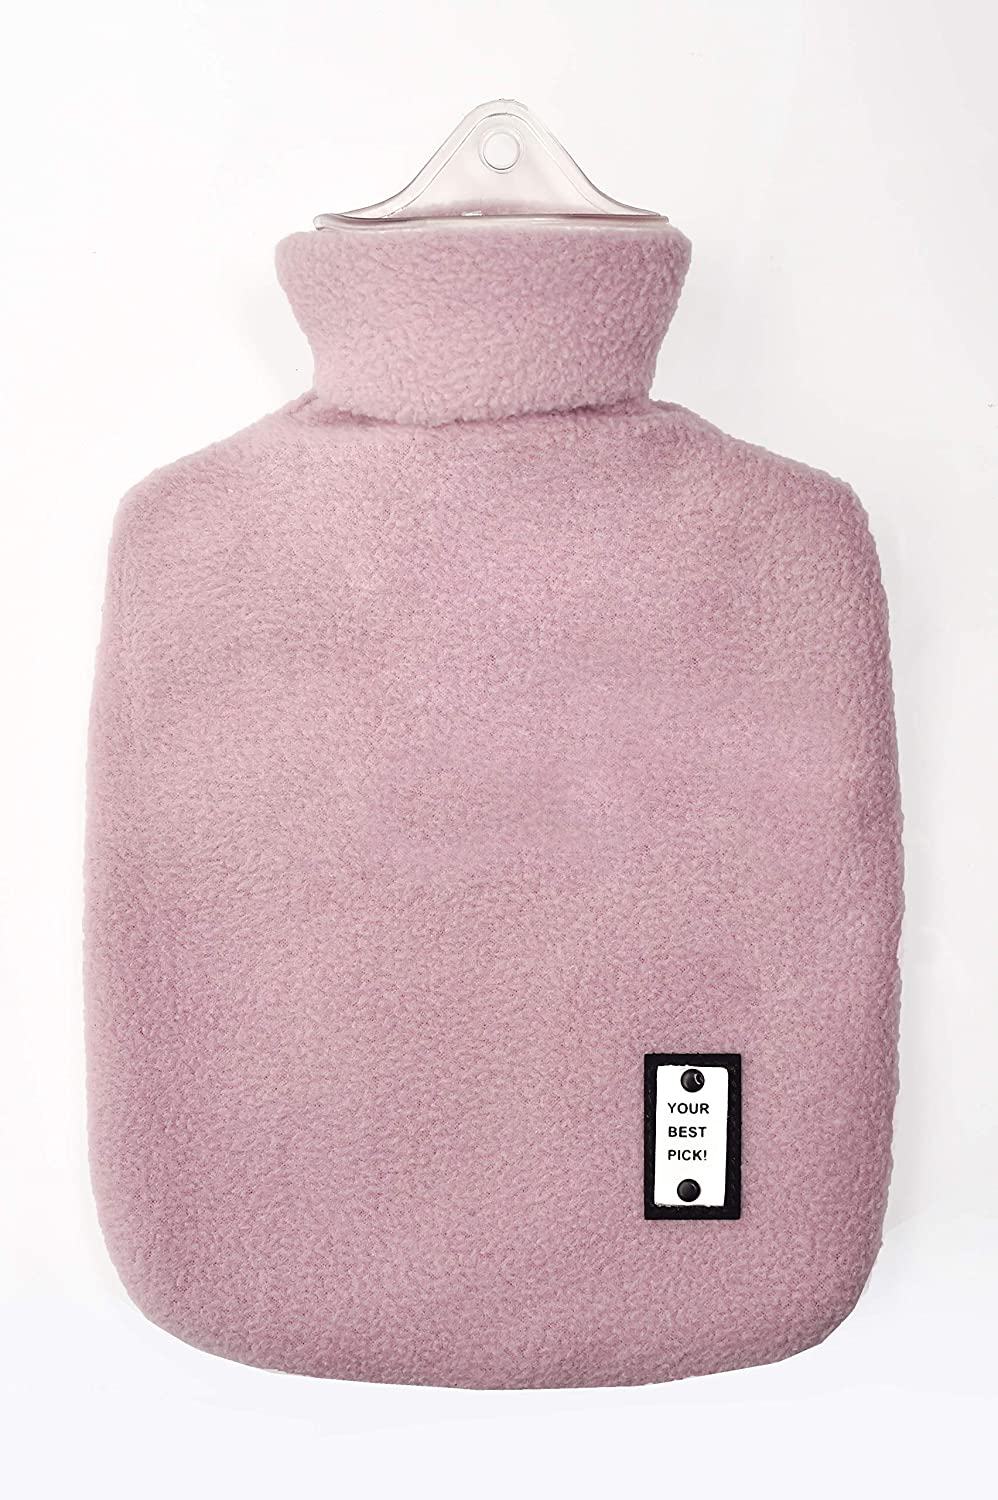 L&L Hot Water Bottle with Fleece 1 Liter hot Water Bag Great for Pain Relief, Hot Compress and Heat Therapy (Purple)